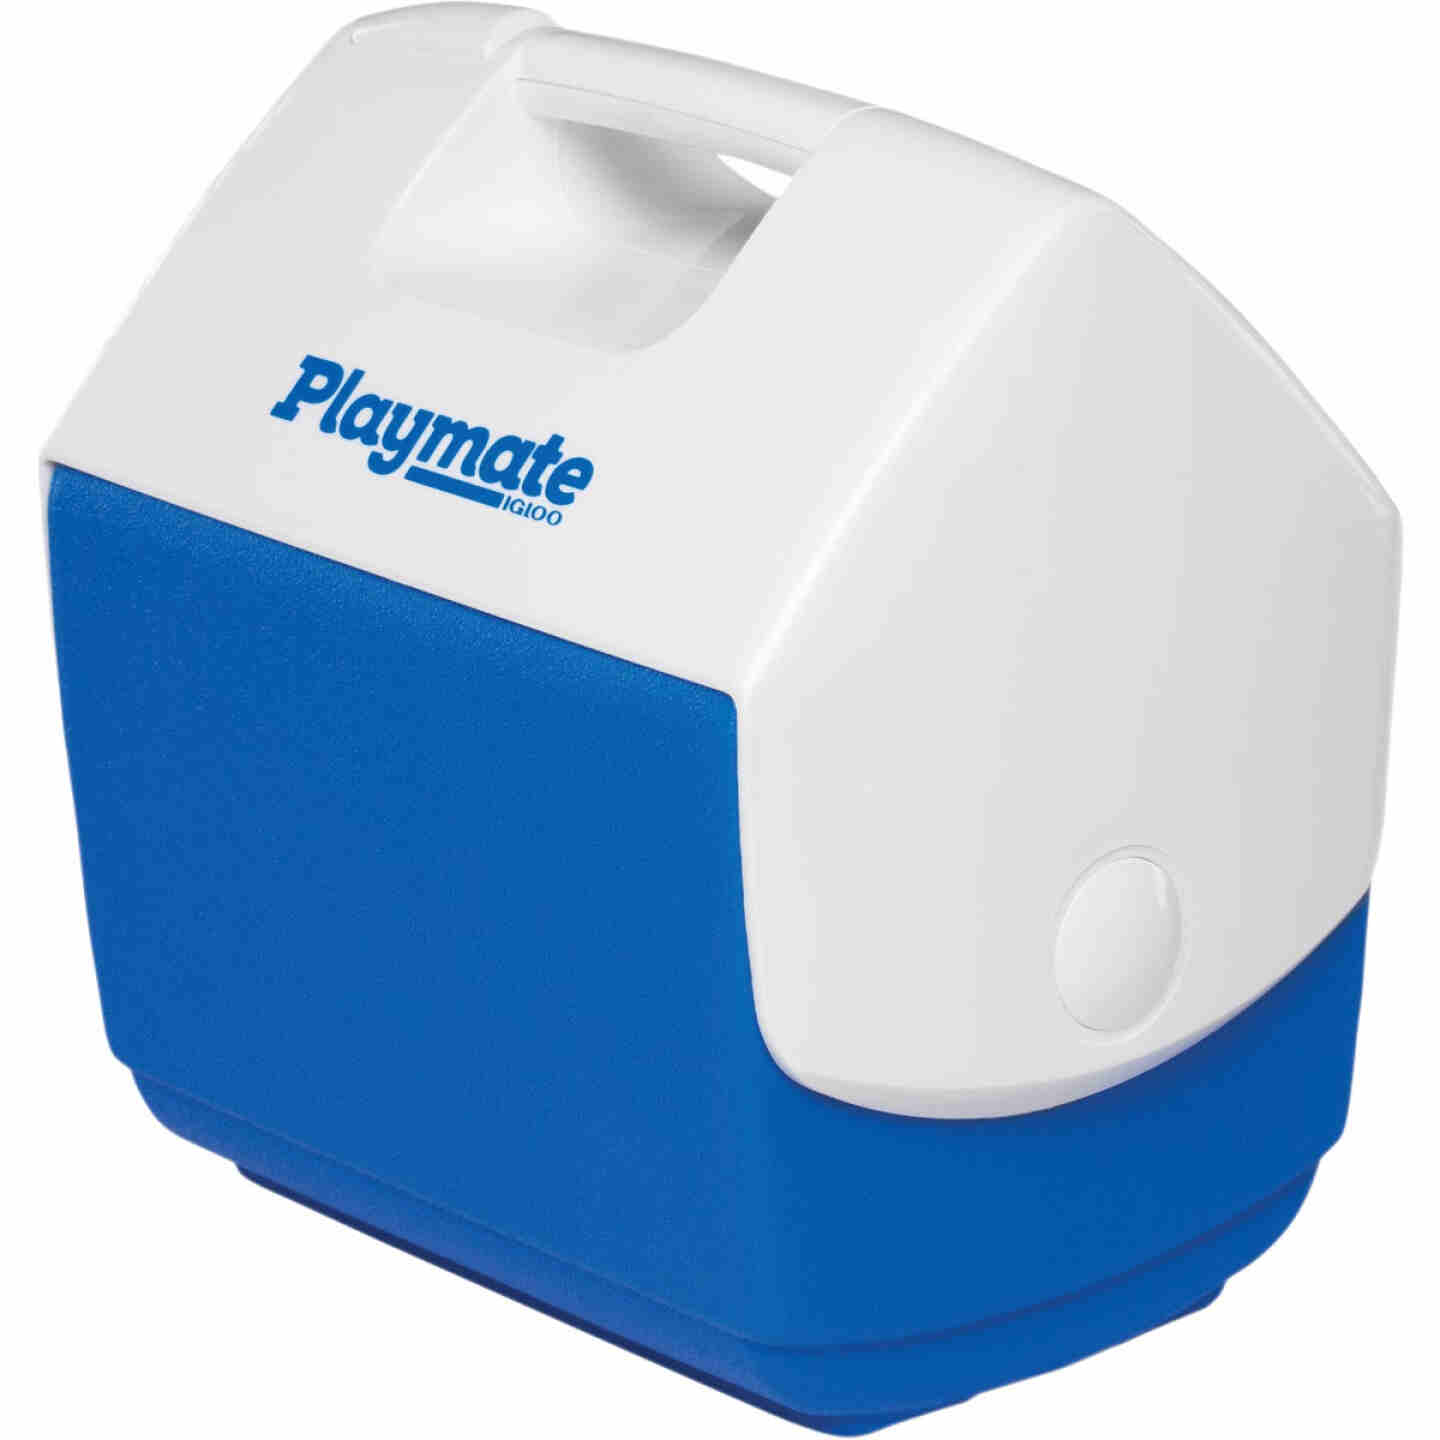 Igloo Playmate Elite 16 Qt. Cooler, Sneaky Blue Image 1